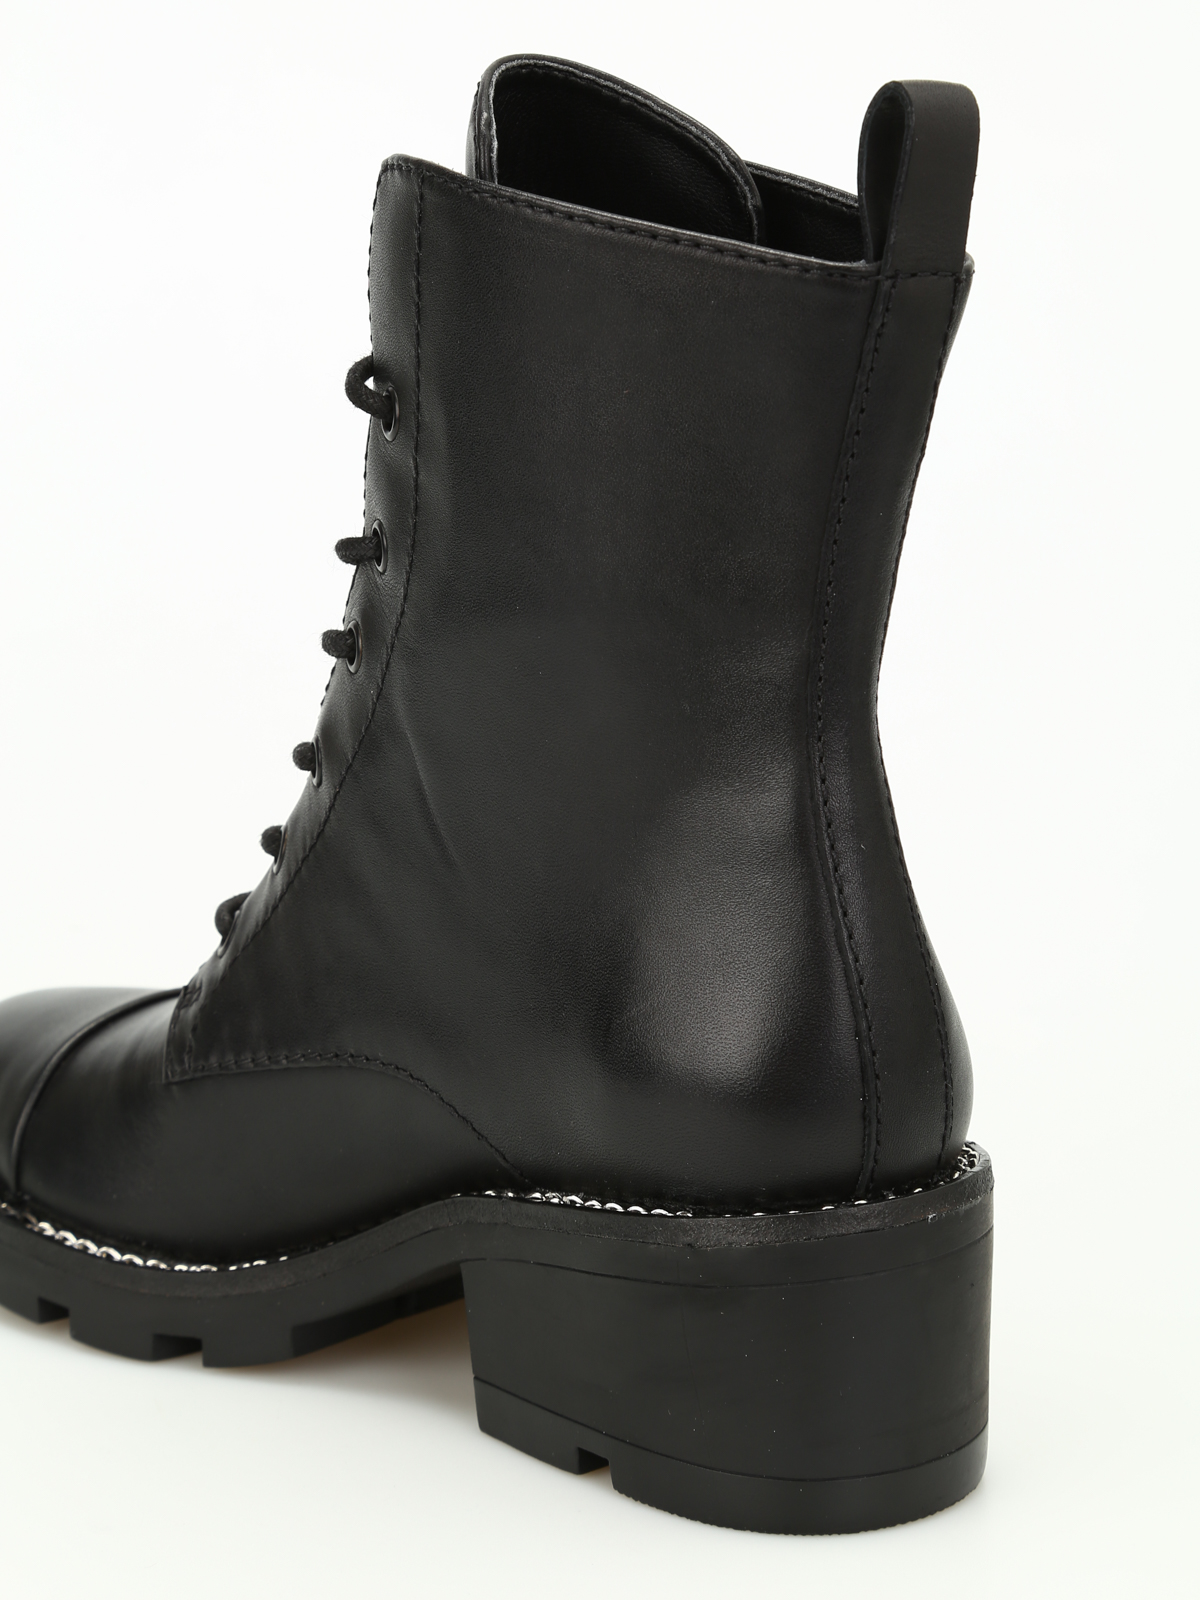 Botines KENDALL & KYLIE PARQUE B BLACK LEATHER